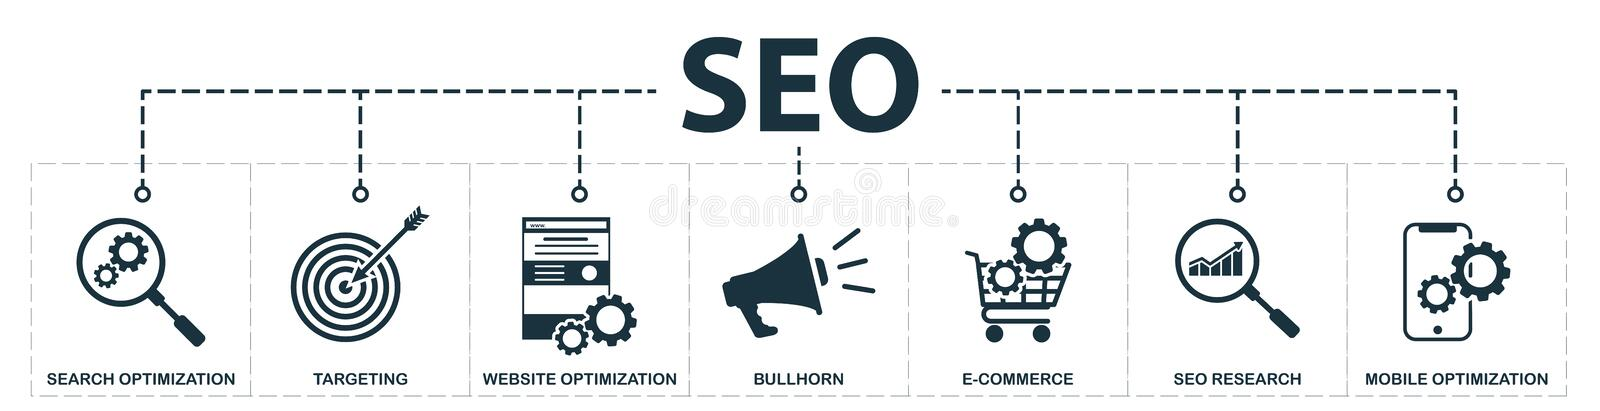 Seo set icons collection. Includes simple elements such as search optimization, keywords, bullhorn, e-commerce optimization, stock illustration